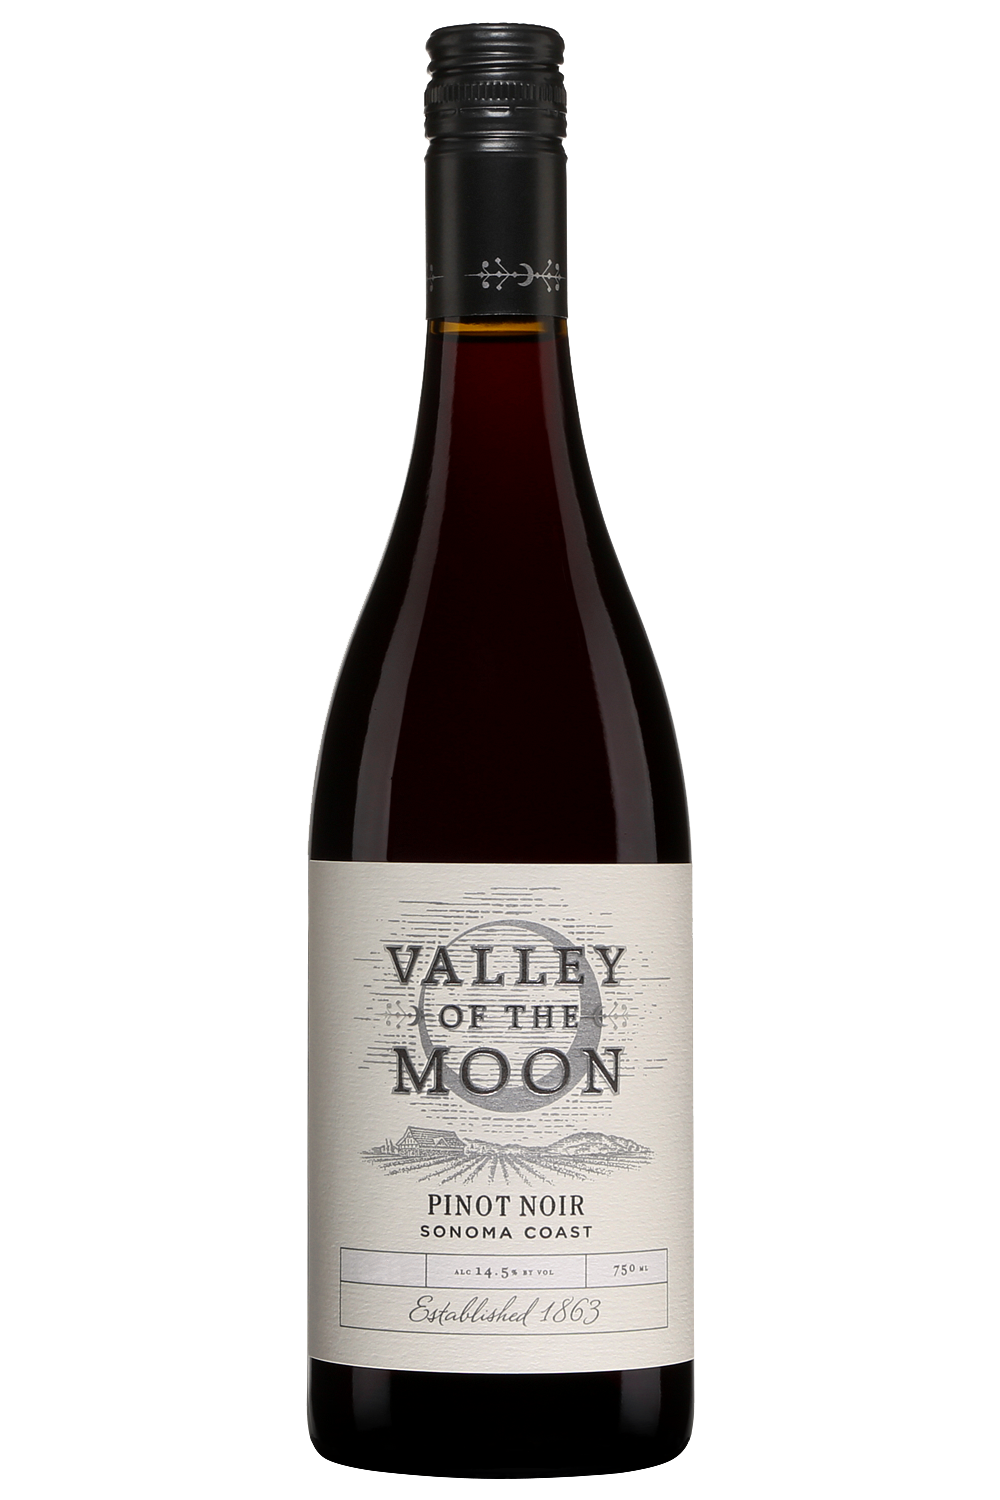 Valley of The Moon Pinot Noir Sonoma Coast Carneros 2017